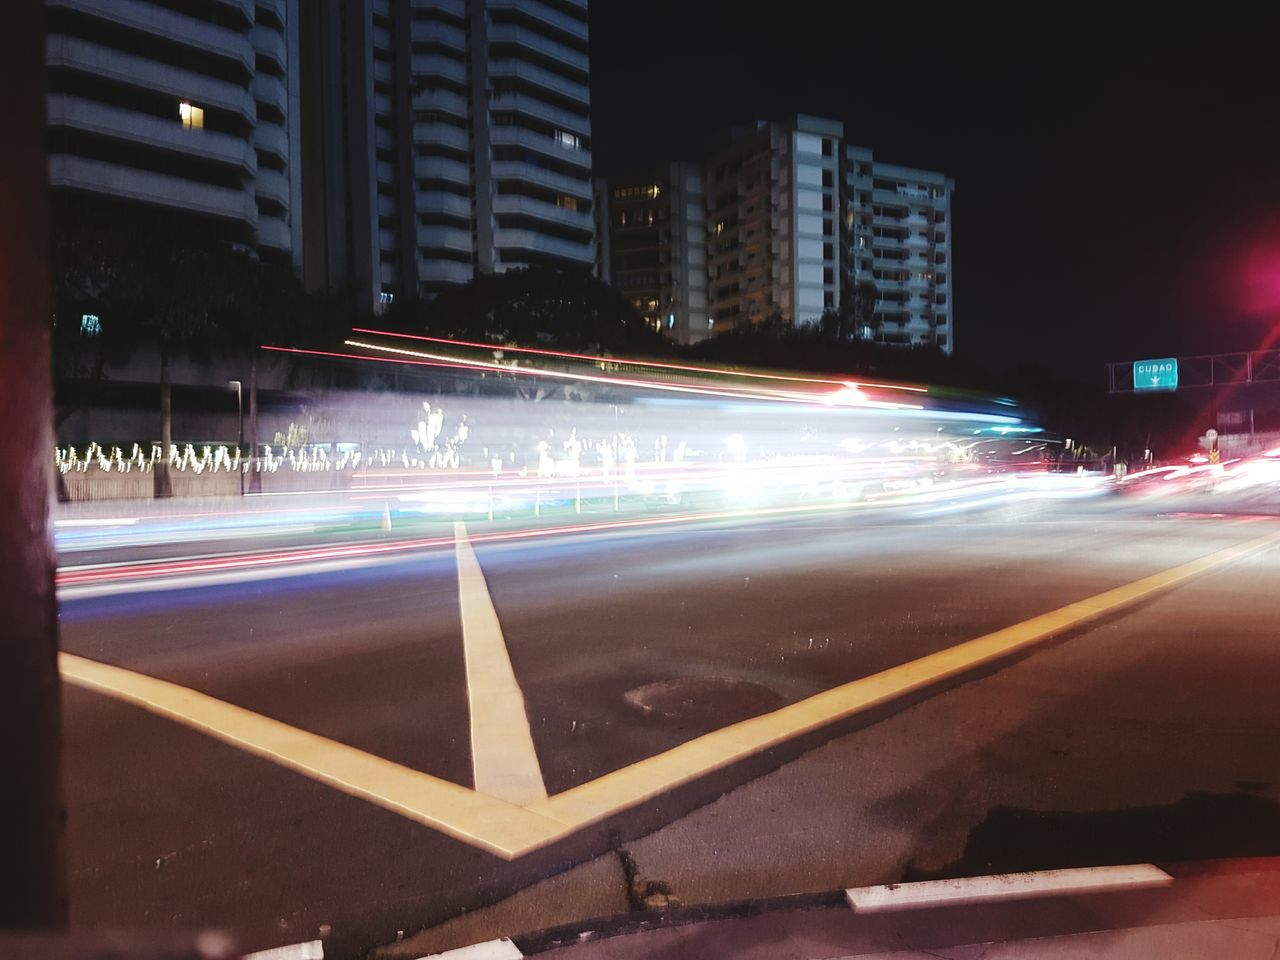 Light trails S7edgephotography S7 Edge S7Edgecamera S7edgephoto Long Exposure Longexposure Light Trails First Eyeem Photo